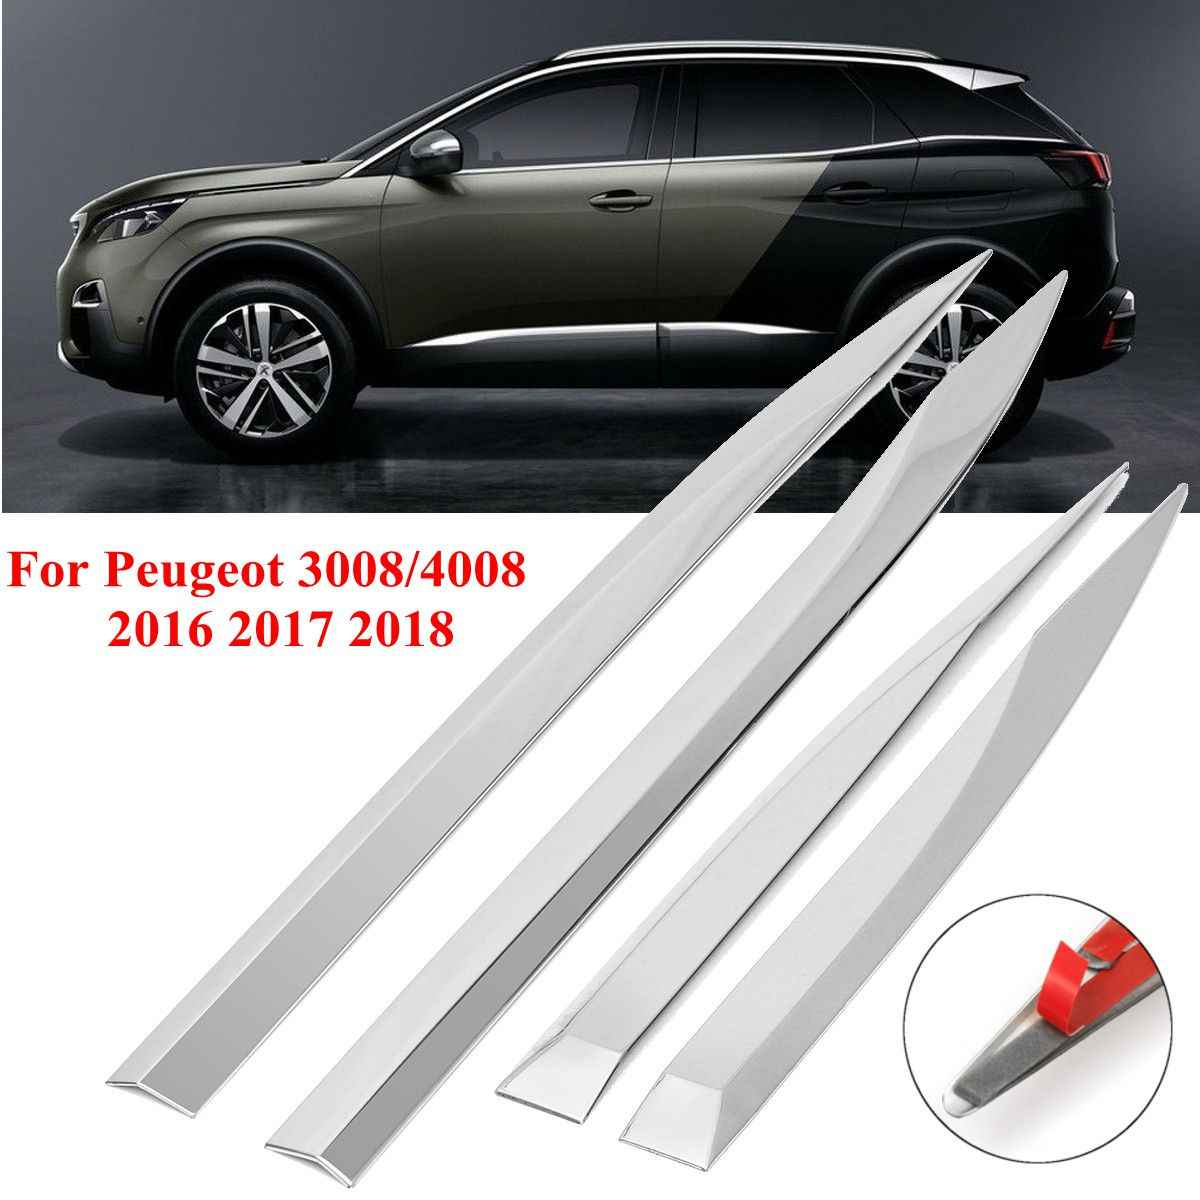 4 Stuks Voor Peugeot 3008/4008 2016 2017 2018 Auto Deur Body Chrome Side Molding Protector Trim Rvs